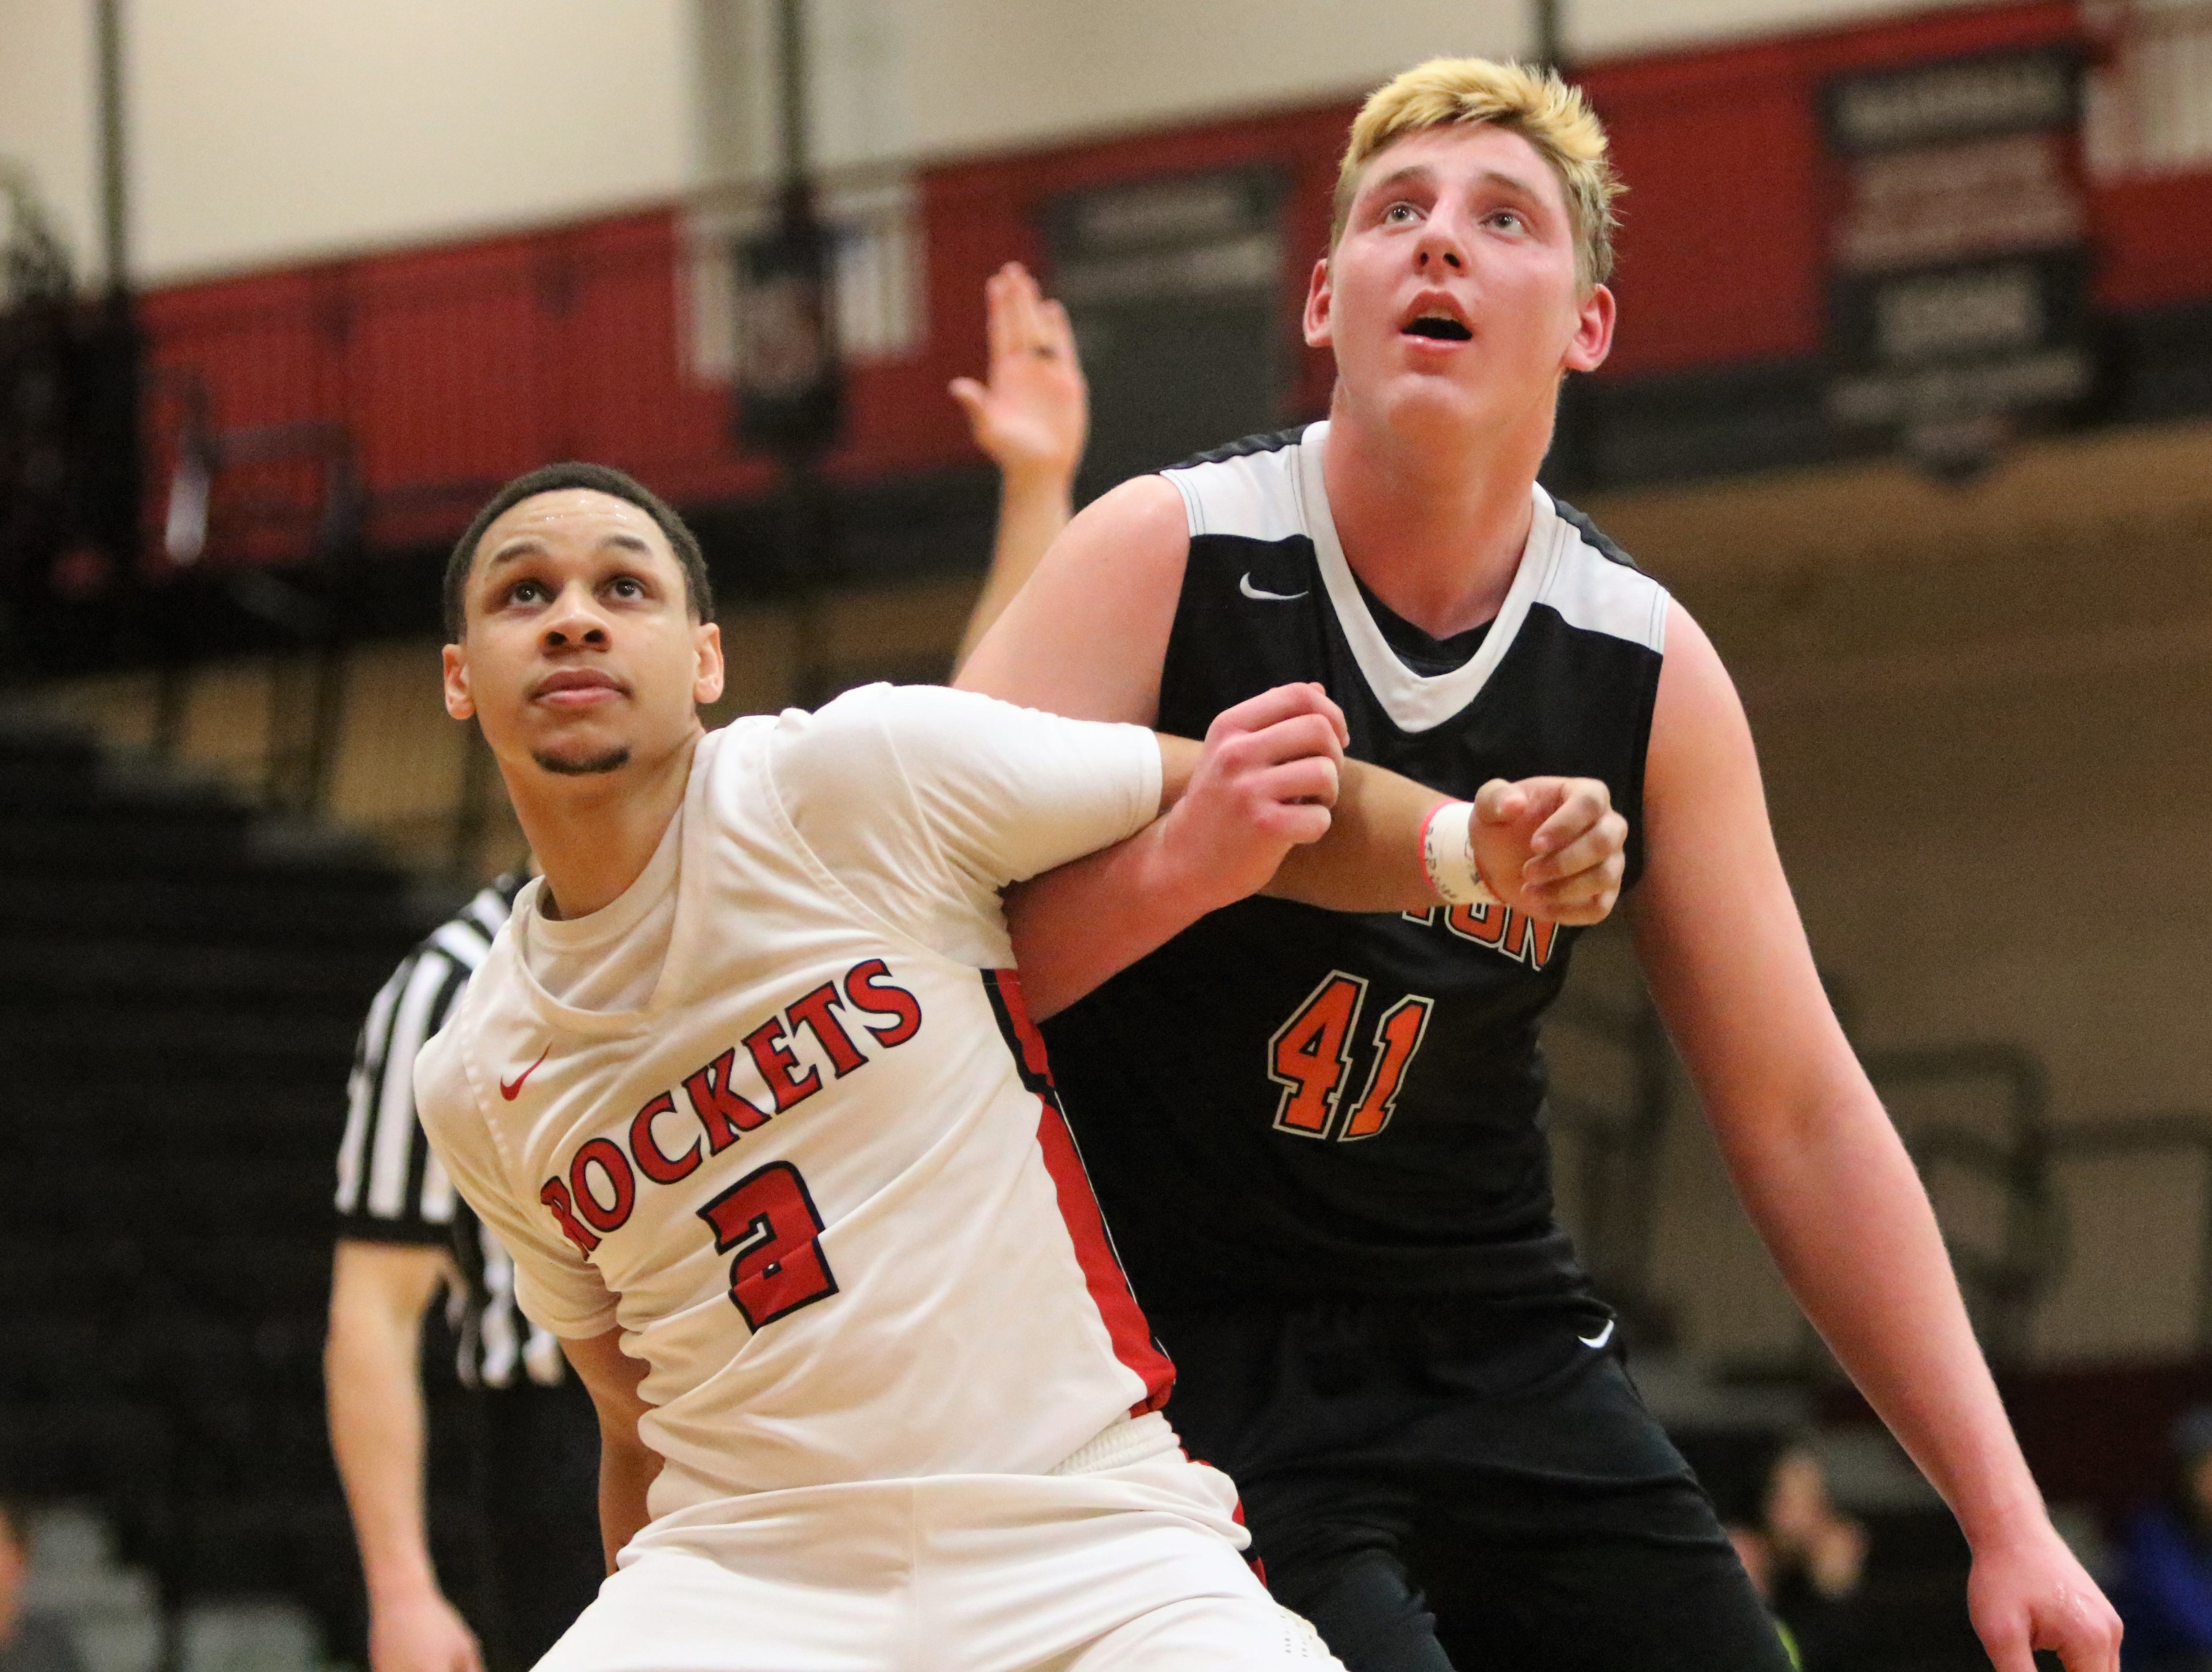 South Milwaukee forward Dez Fitzpatrick (left) boxes out Grafton forward JP Benzschawel during a game on Jan. 22, 2019.